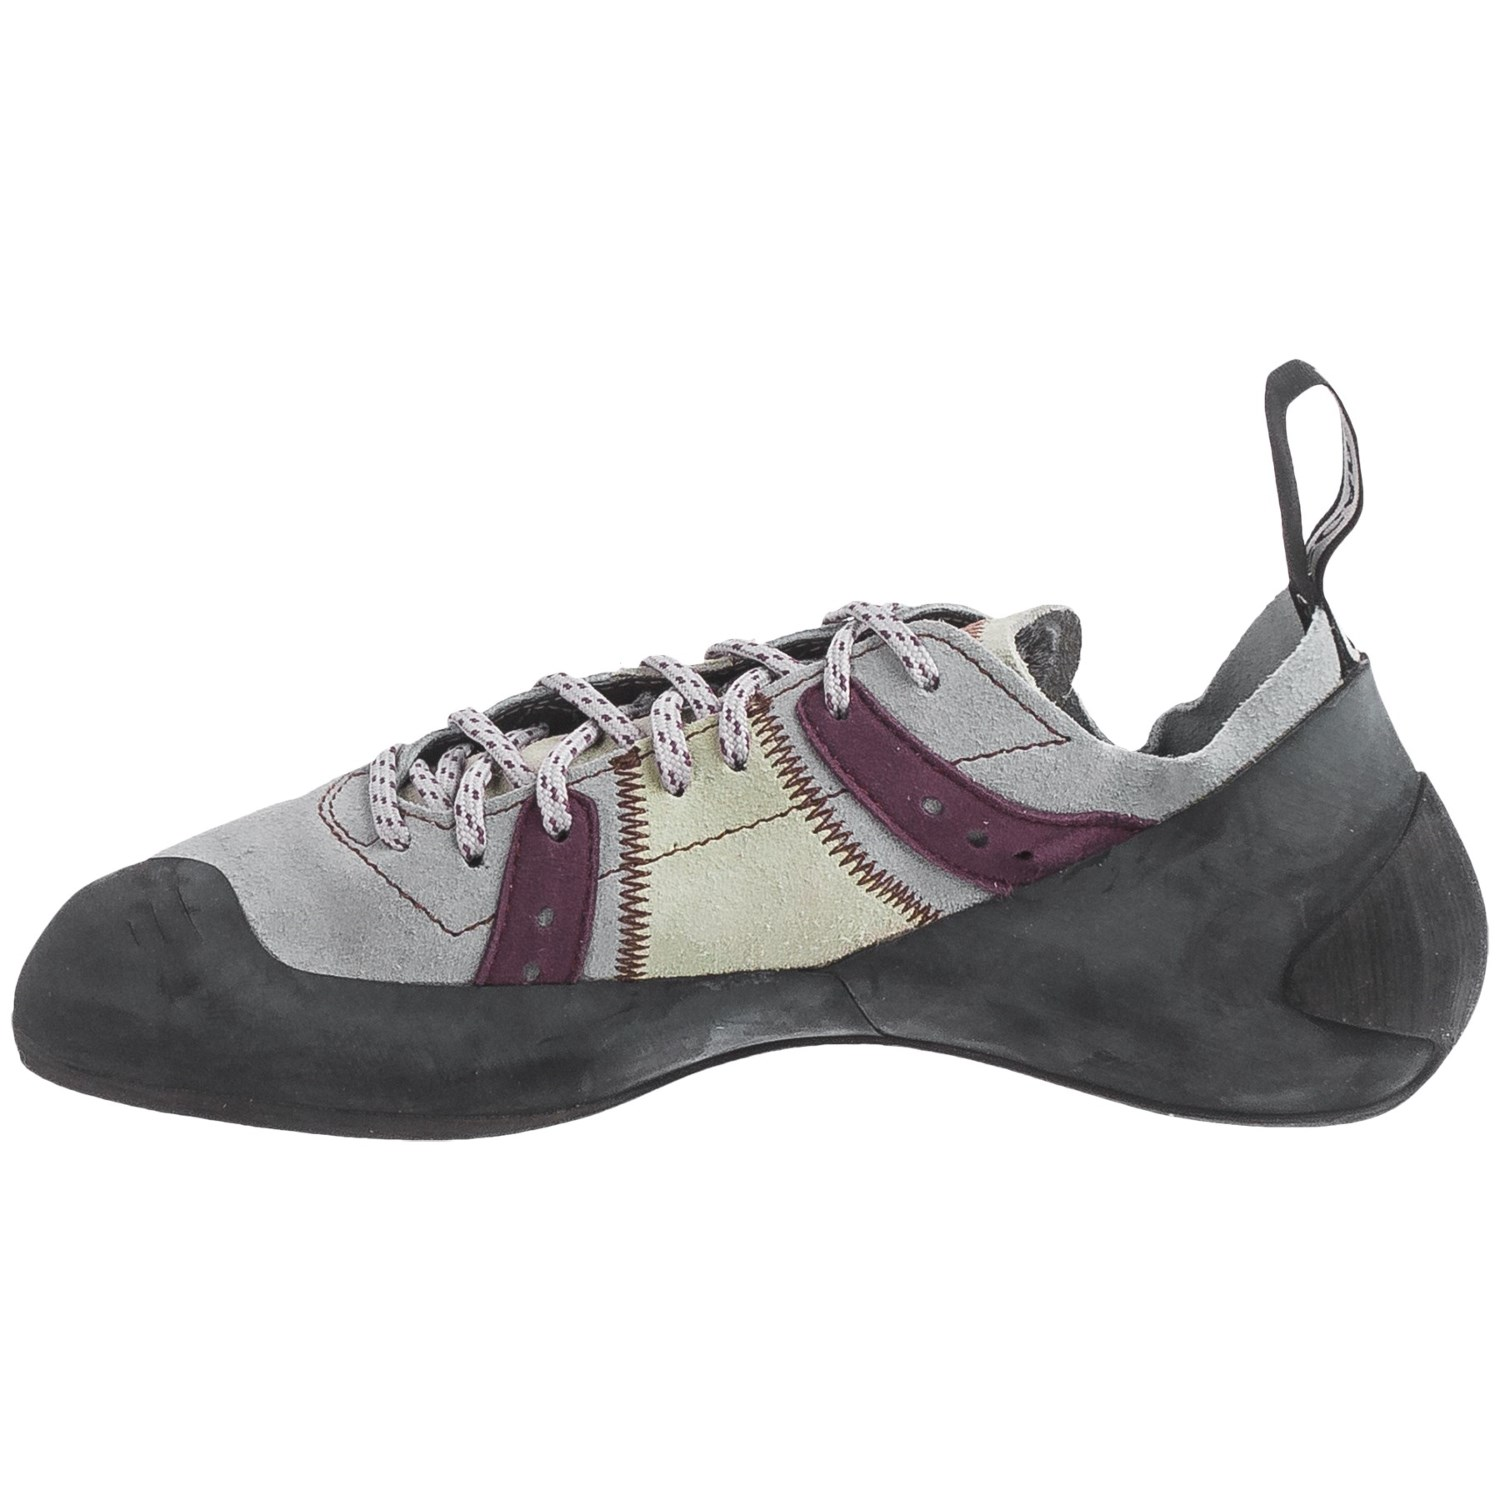 Scarpa Helix Womens Climbing Shoes